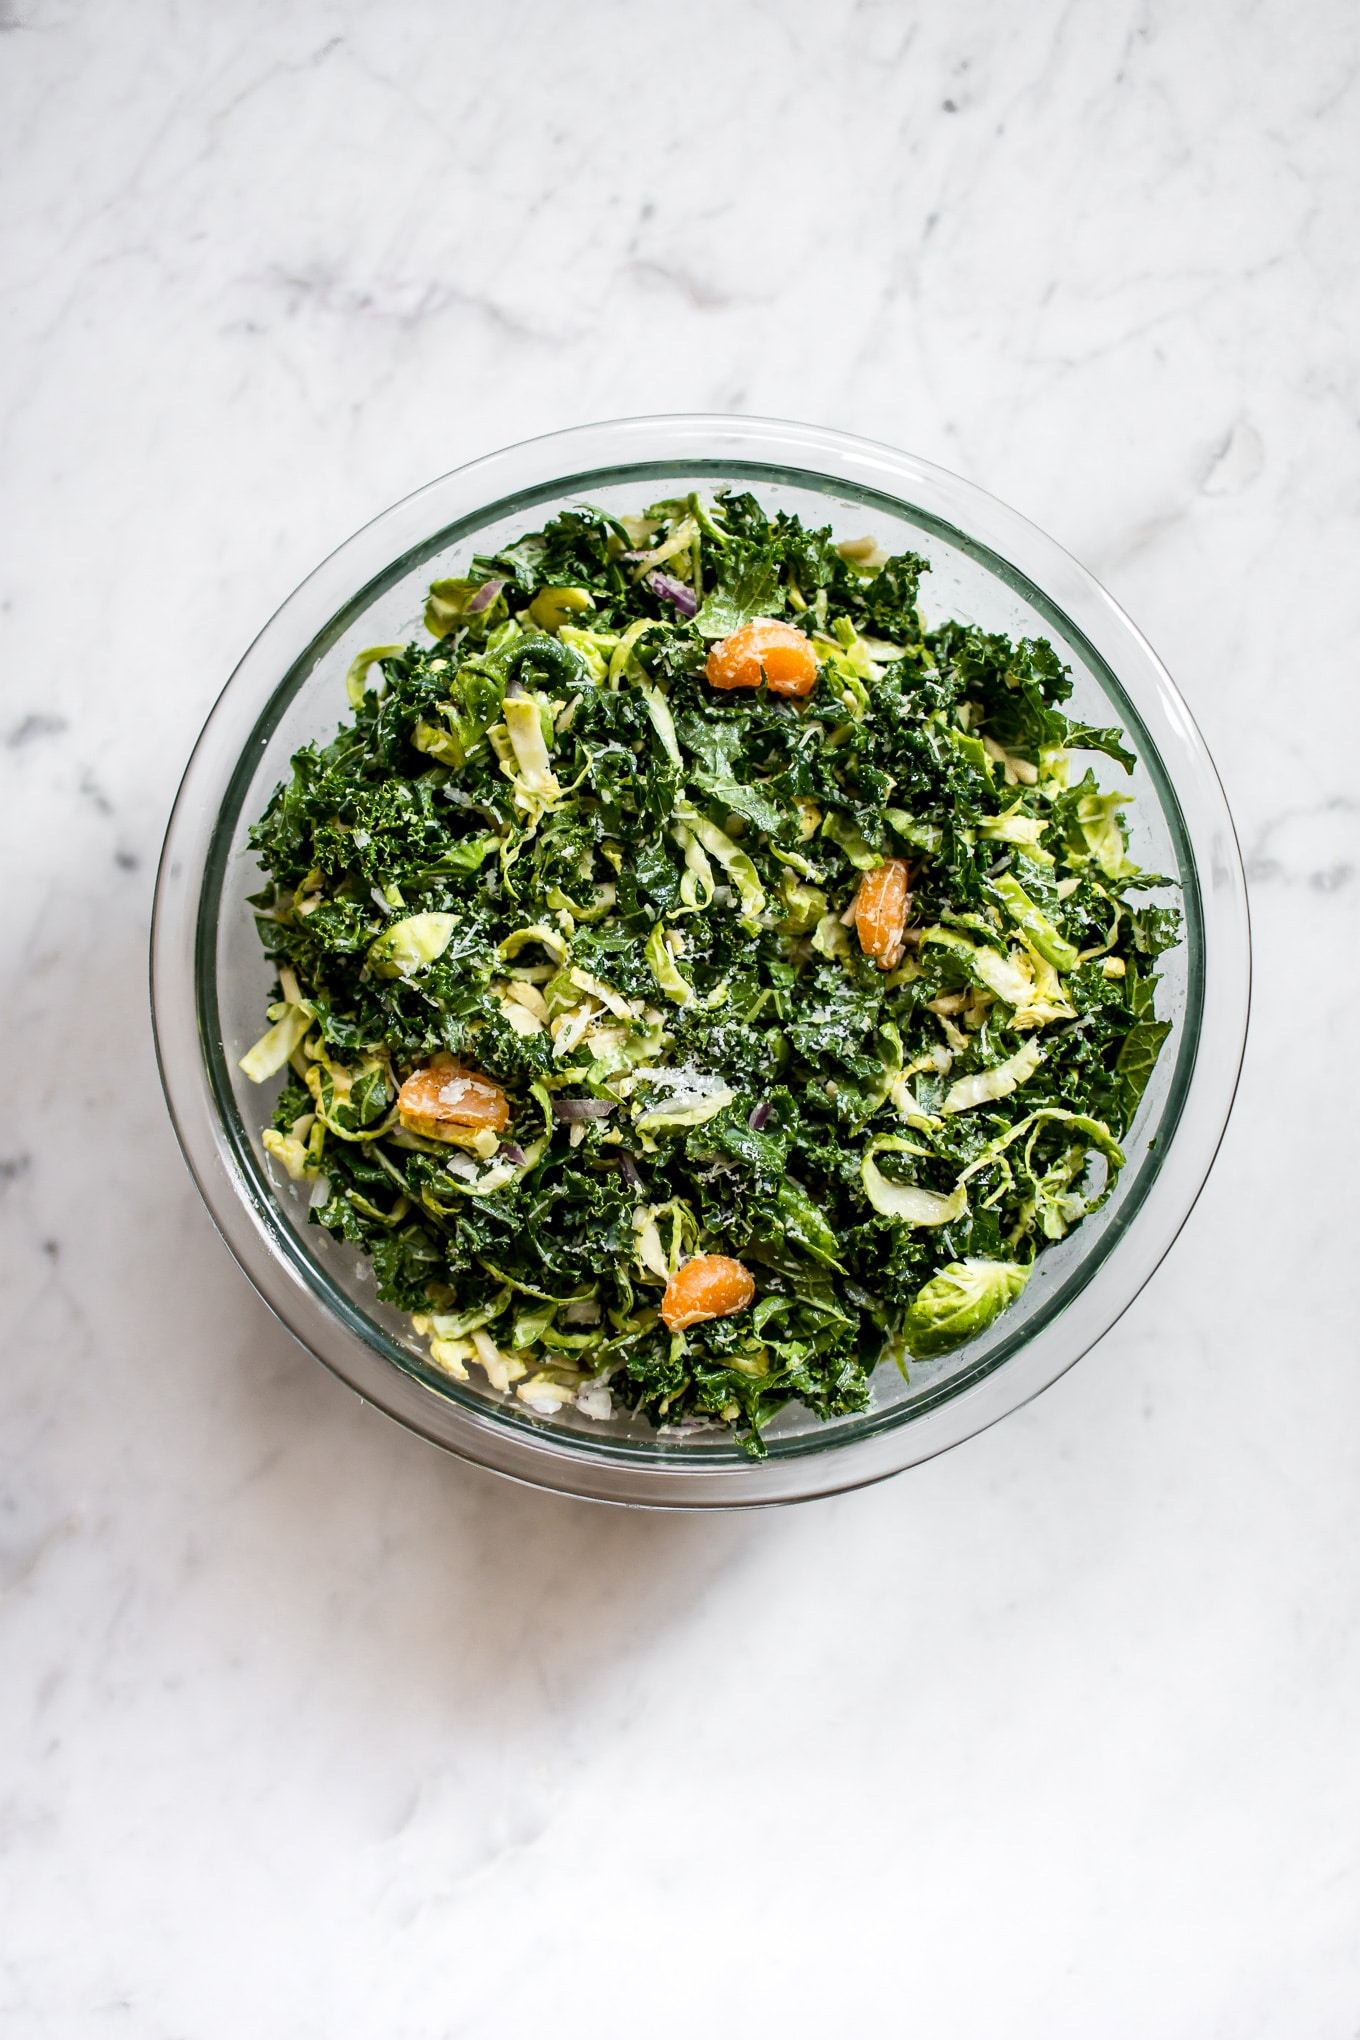 This shredded kale and Brussels sprouts salad is flavorful, filling, and delicious with pecorino cheese and mandarin oranges.